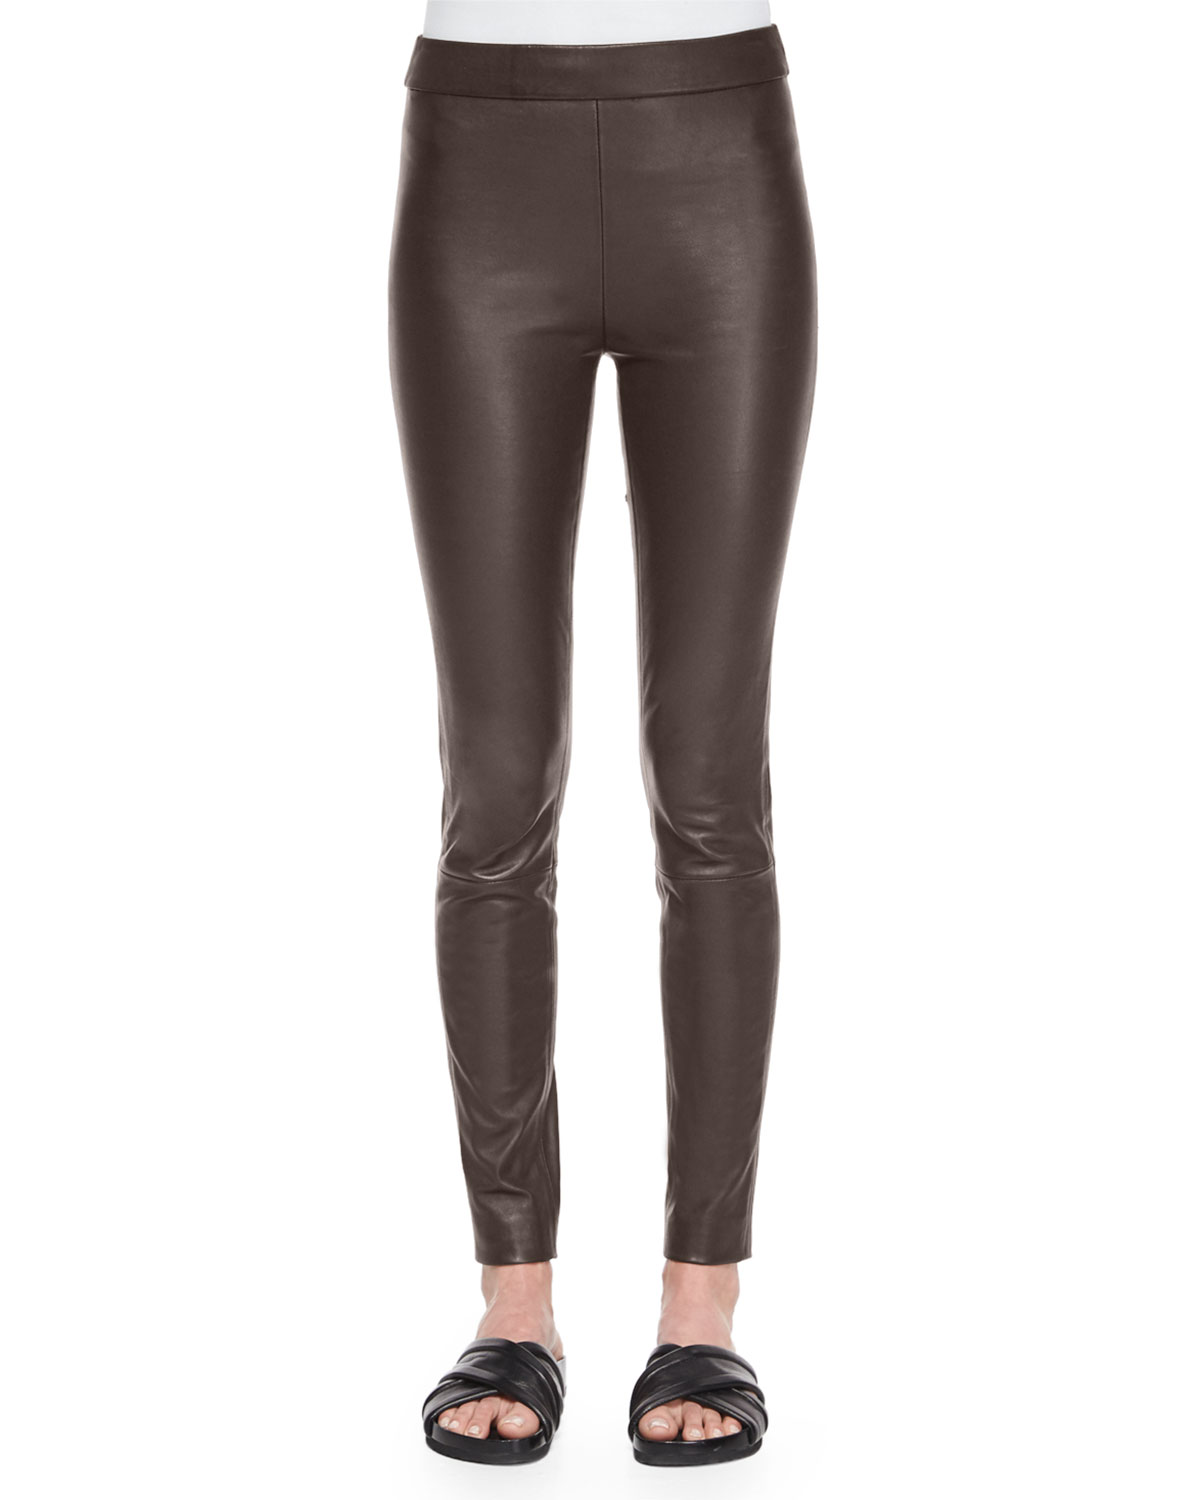 Theory Adbelle Leather Axiom Pants, Men's, Size: 2, Dark Army